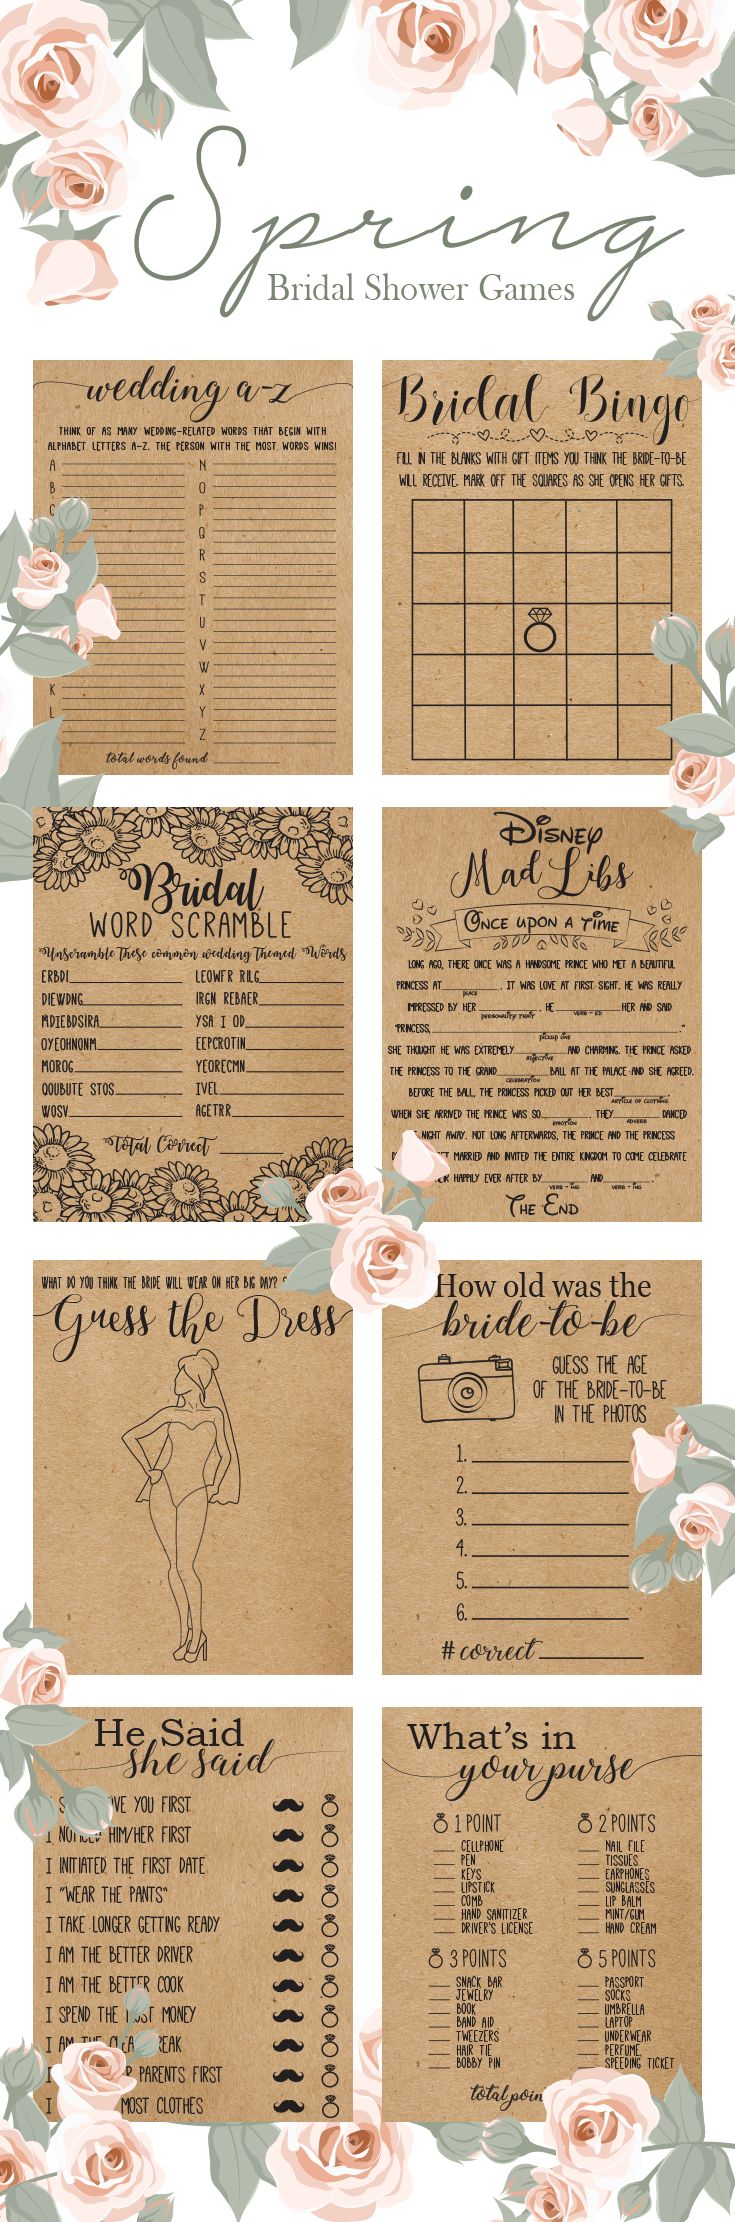 games to play at couples wedding shower%0A bridal shower invitations  bridal shower gifts  bridal shower games  bridal  shower ideas